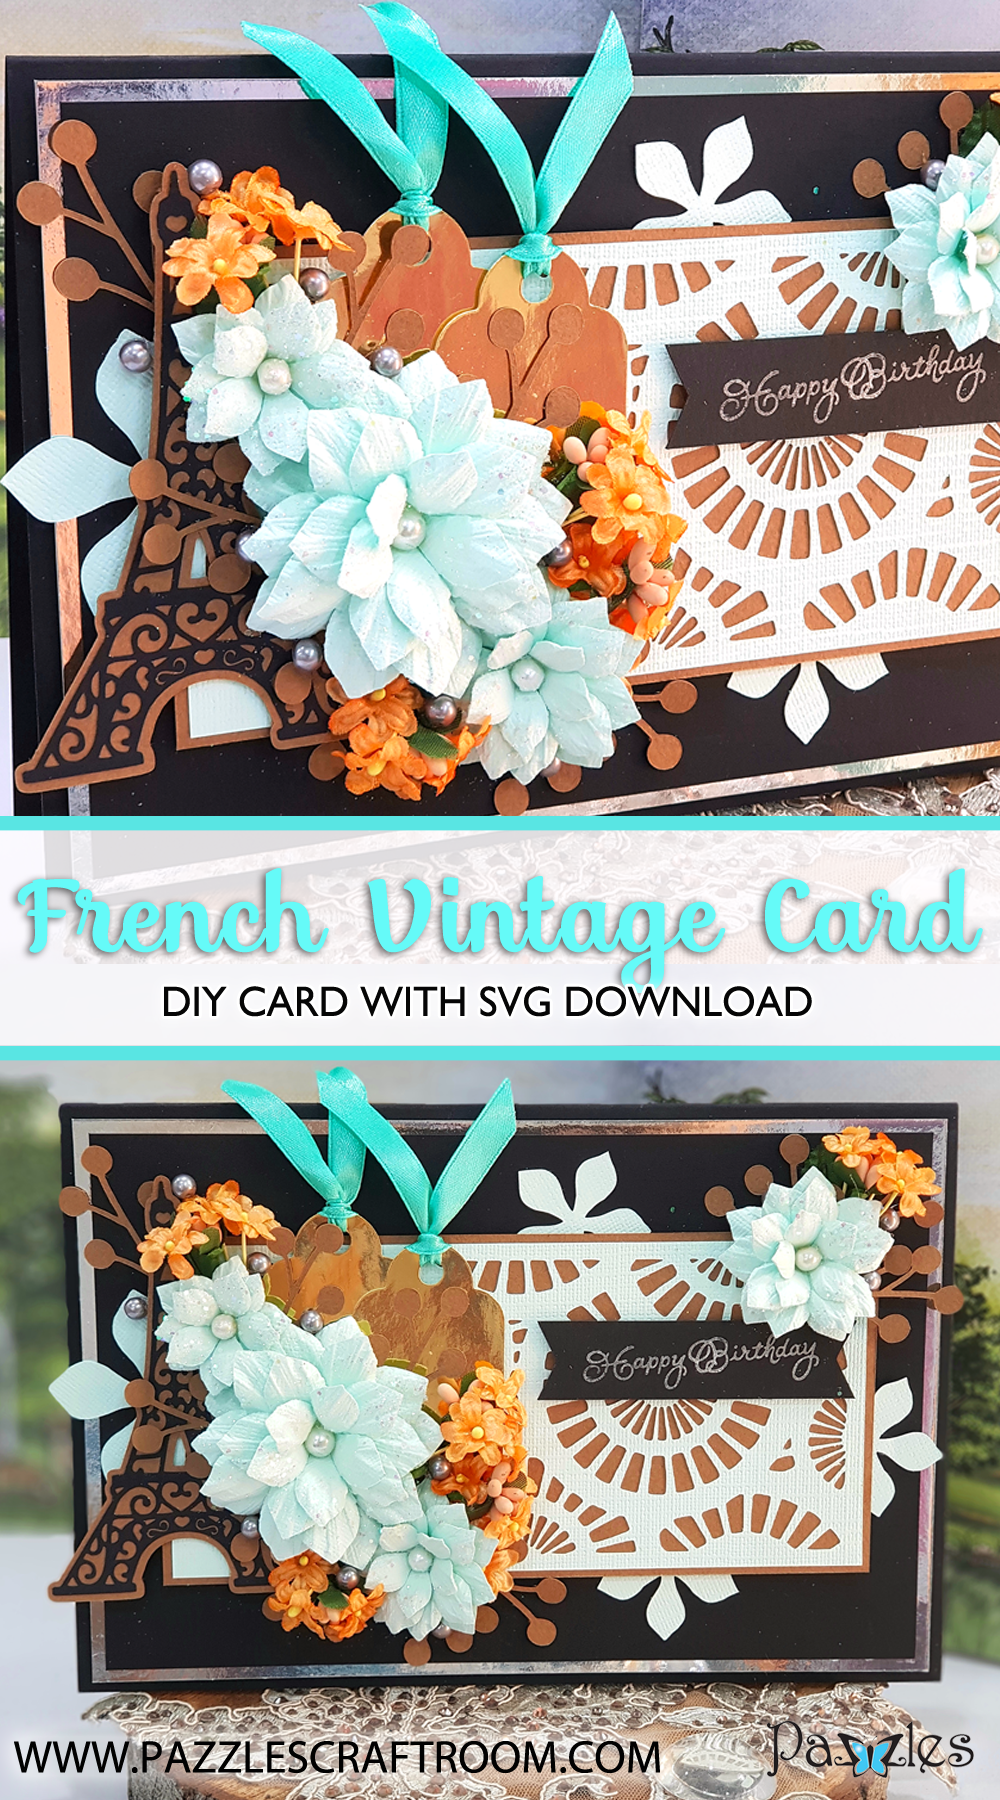 Pazzles DIY French Vintage Card for birthday with instant SVG download. Compatible with all major electronic cutters including Pazzles Inspiration, Cricut, and Silhouette Cameo. Design by Nida Tanweer.